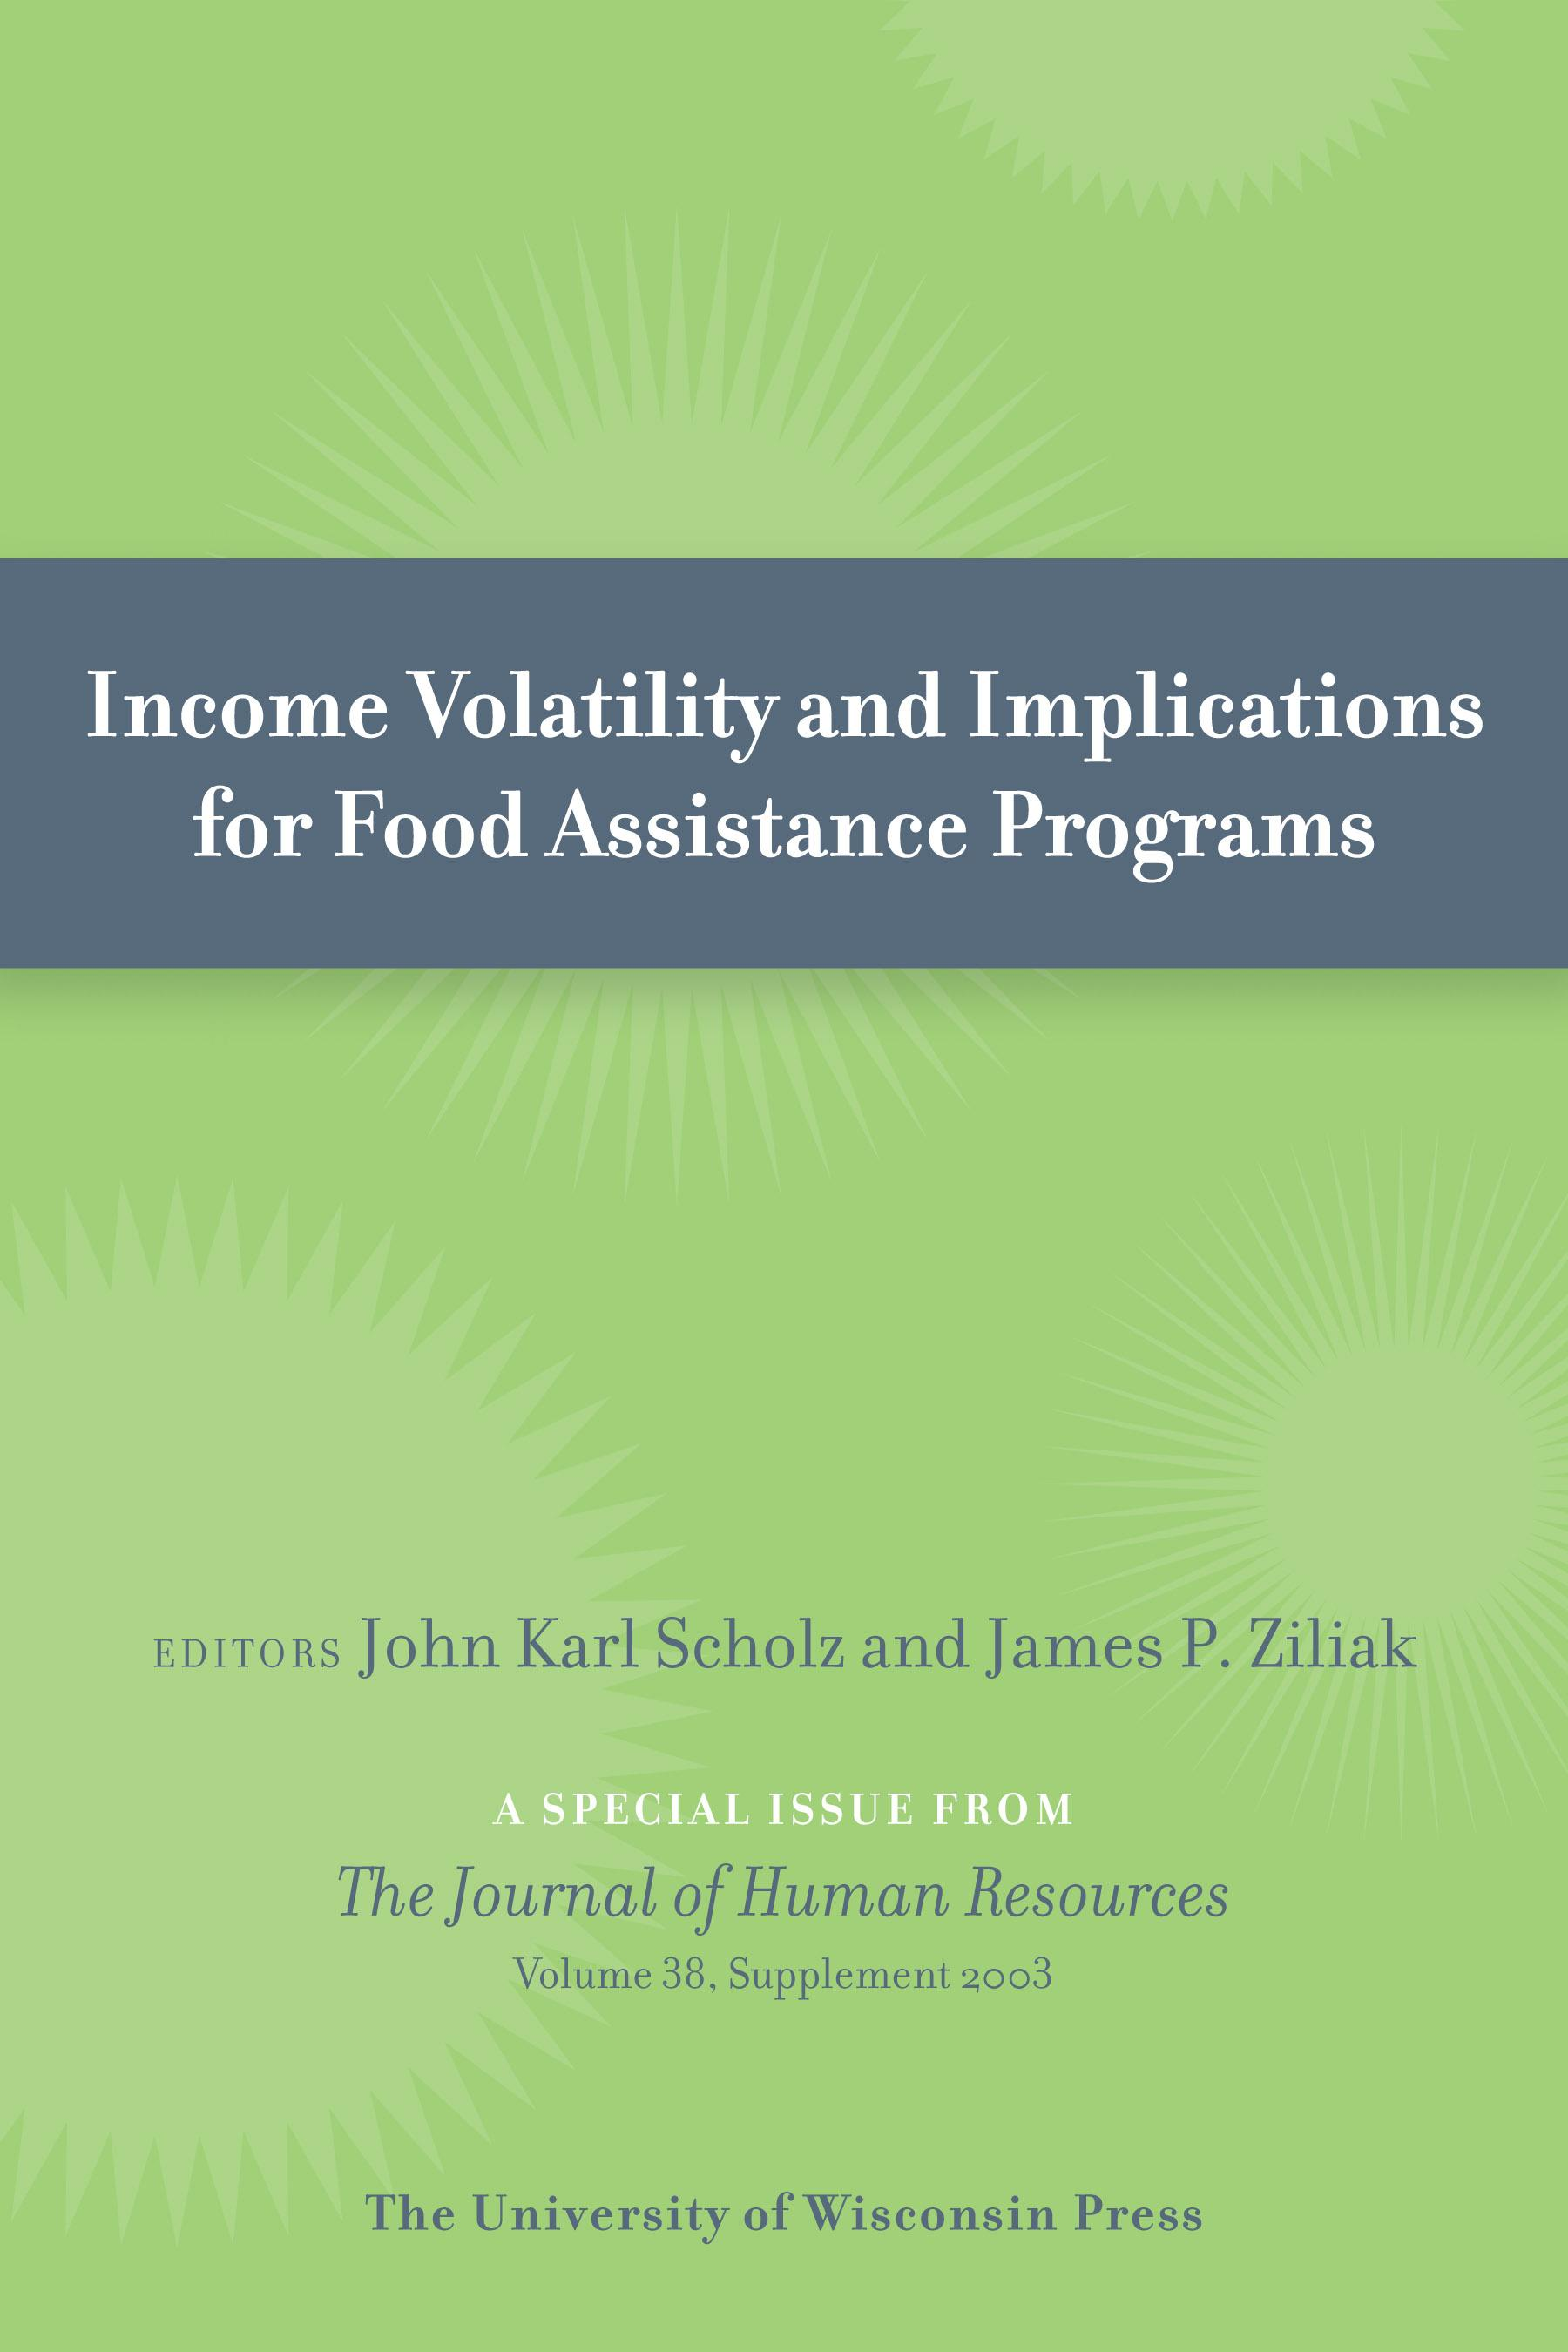 Income Volatility and Implications for Food Assistance Programs EB9780299237738